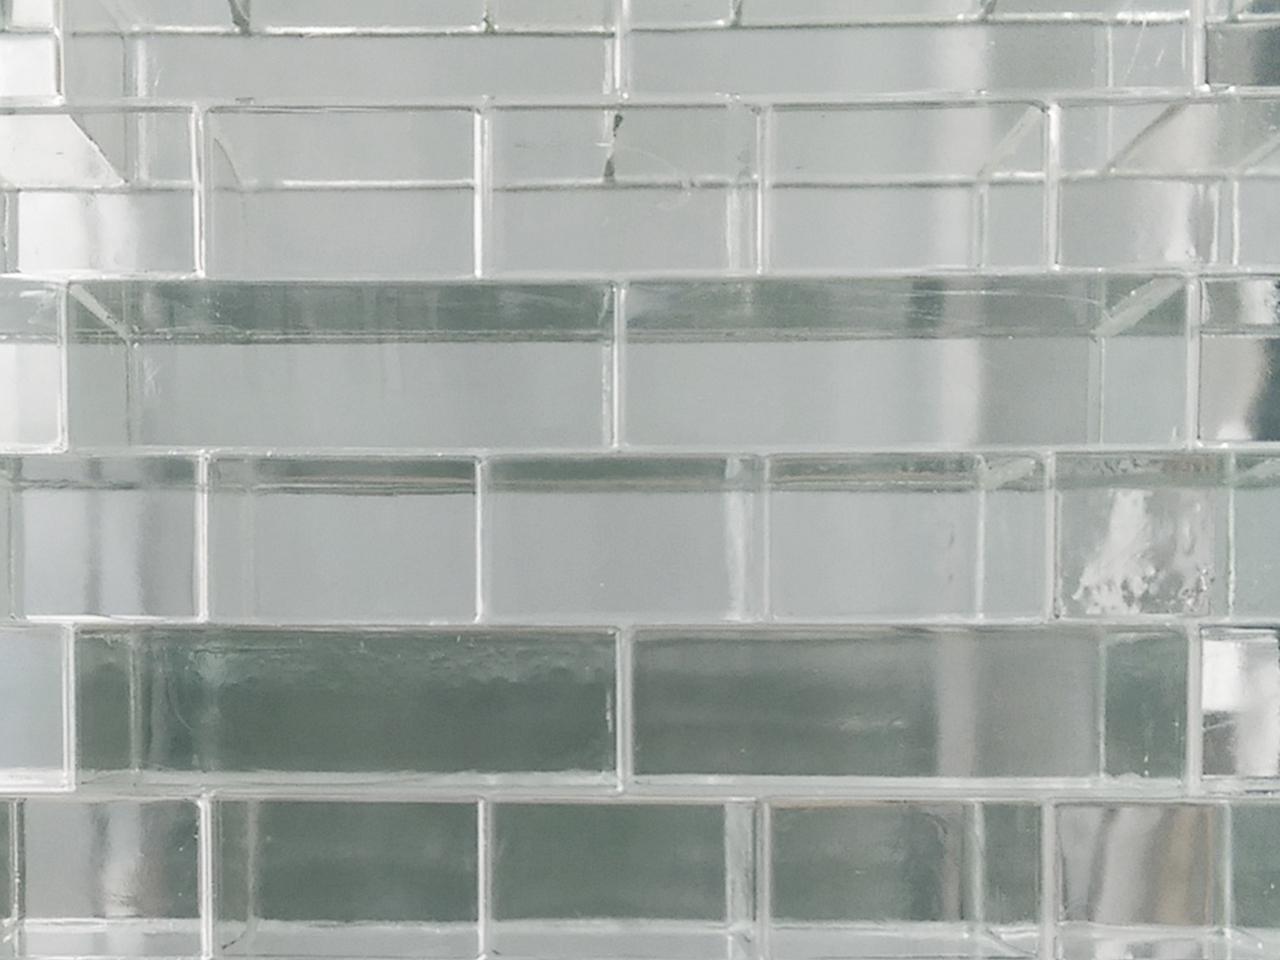 Mvrdv wall of glass bricks designed by mvrdv featured in - Glass bricks designs walls ...